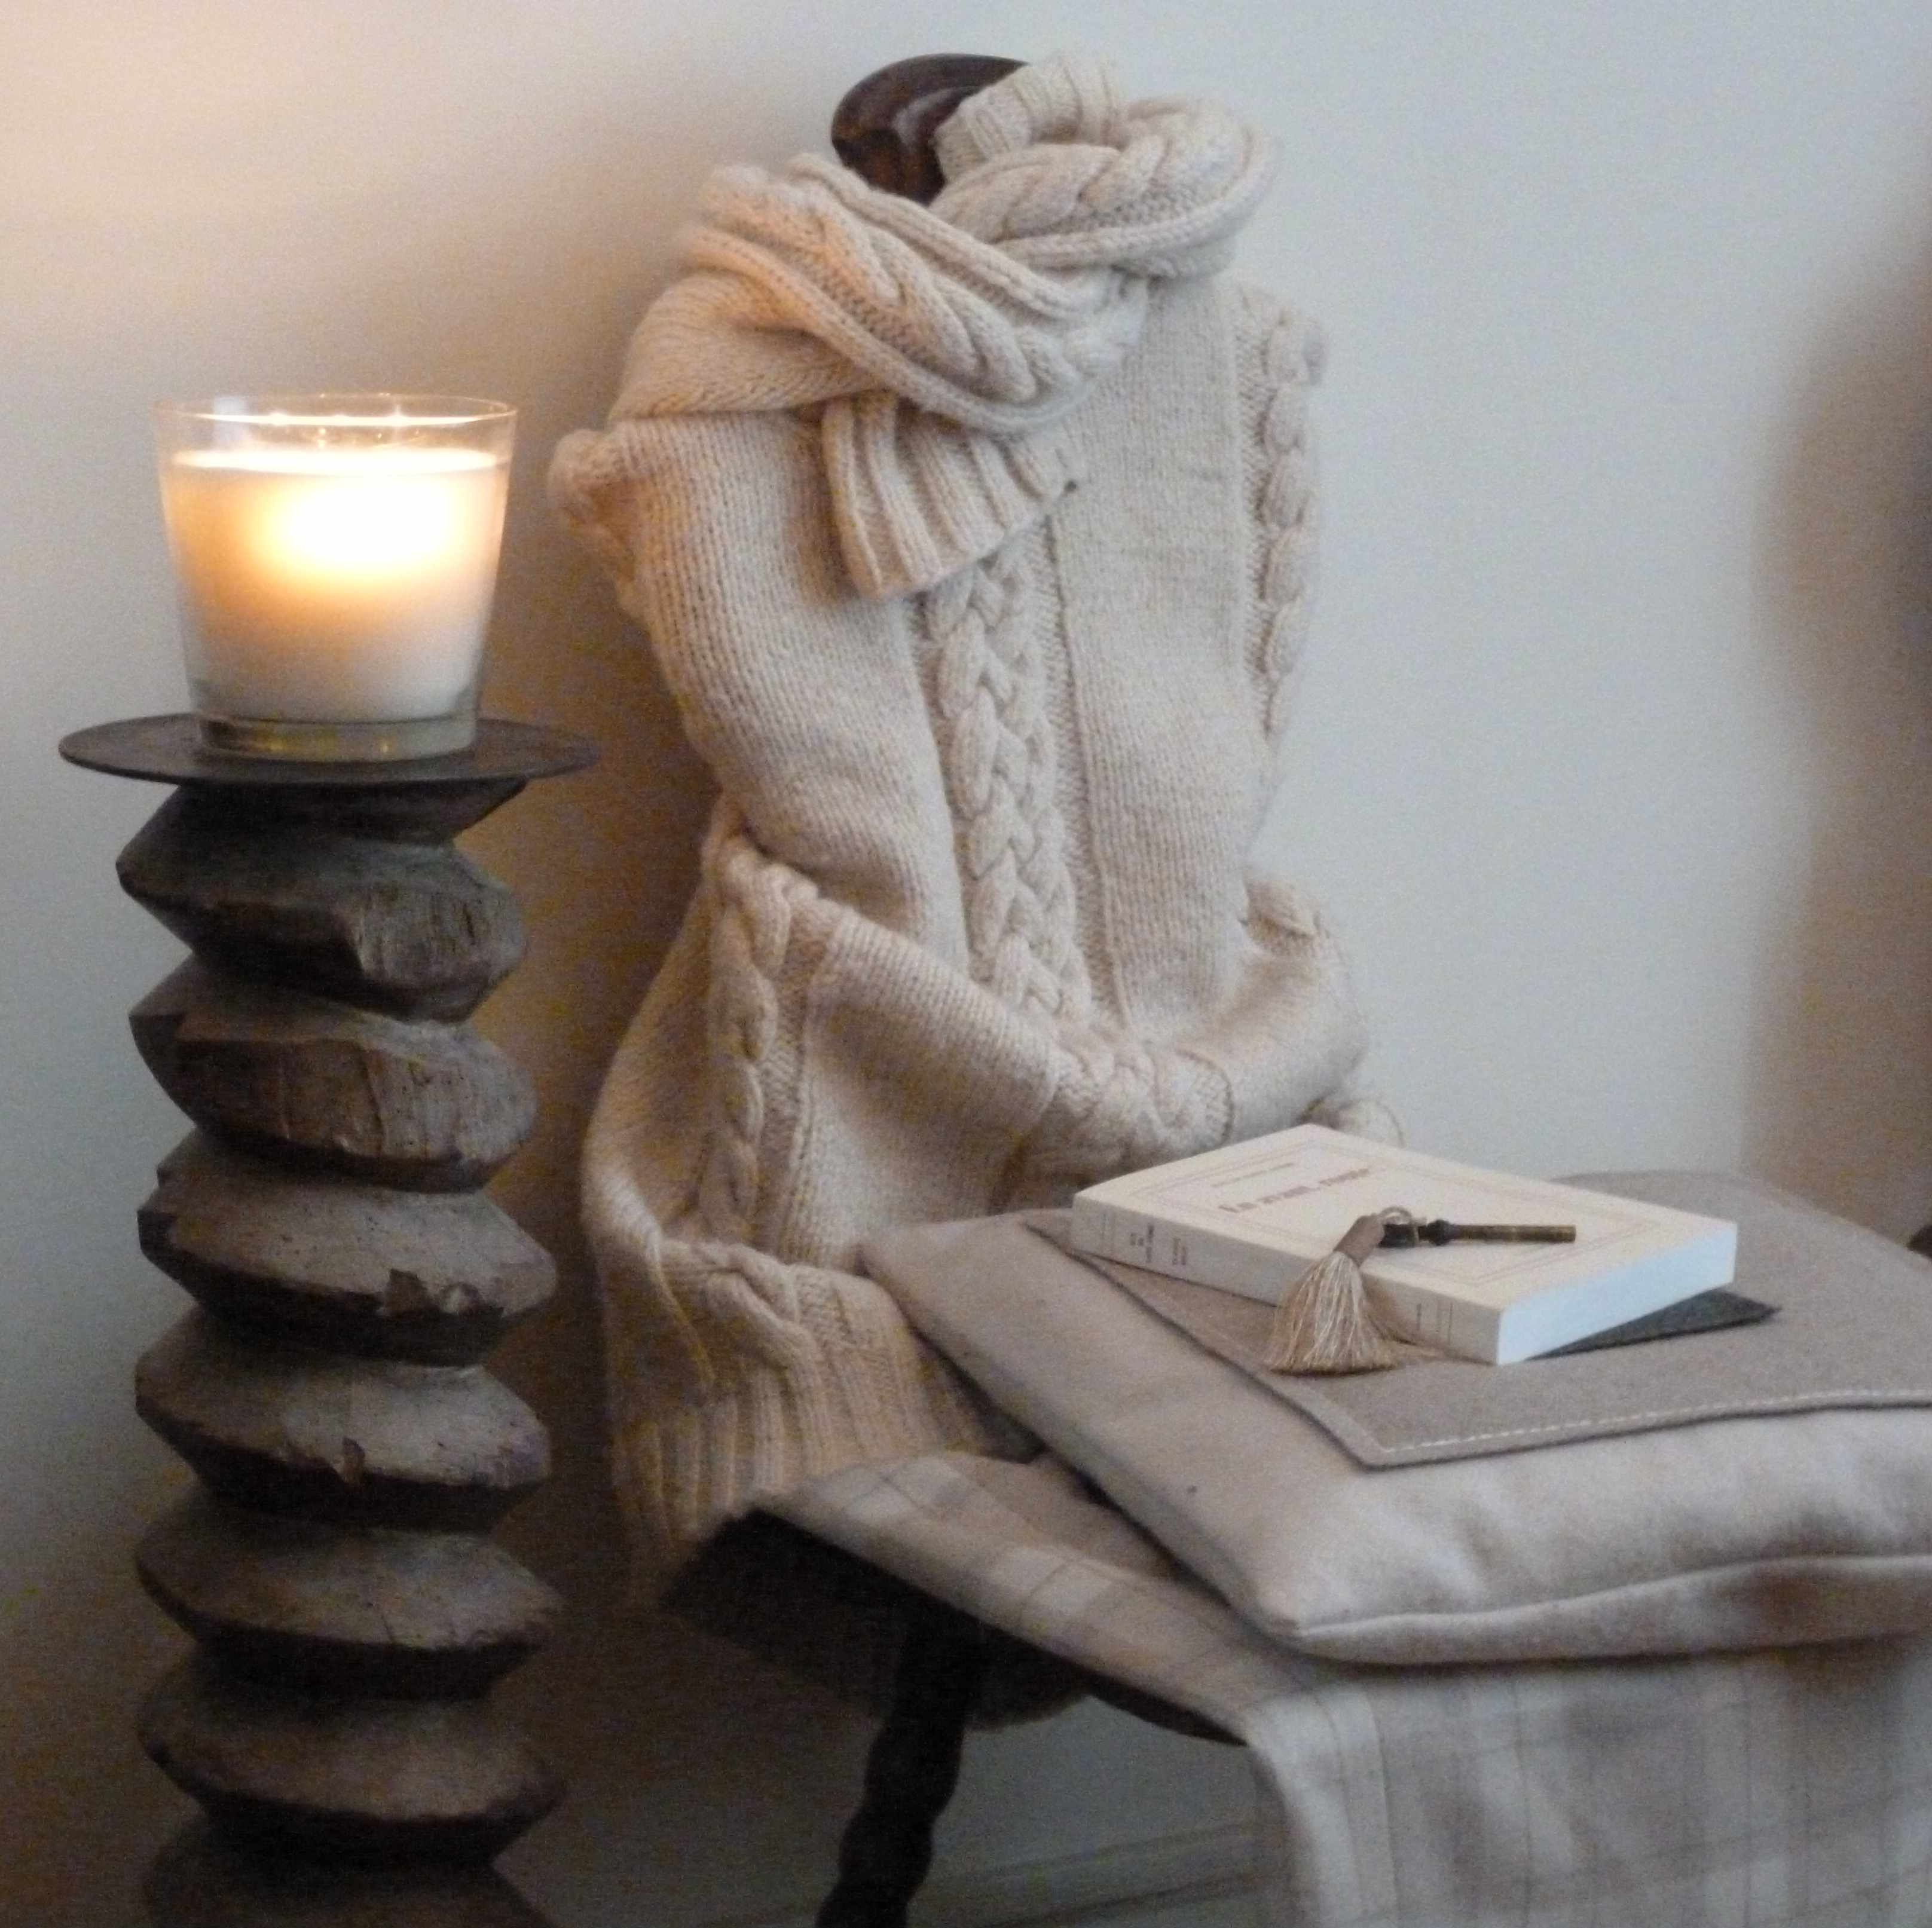 chaise_Alsace_habillee-pour-l-hiver_ATOUSLESETAGES